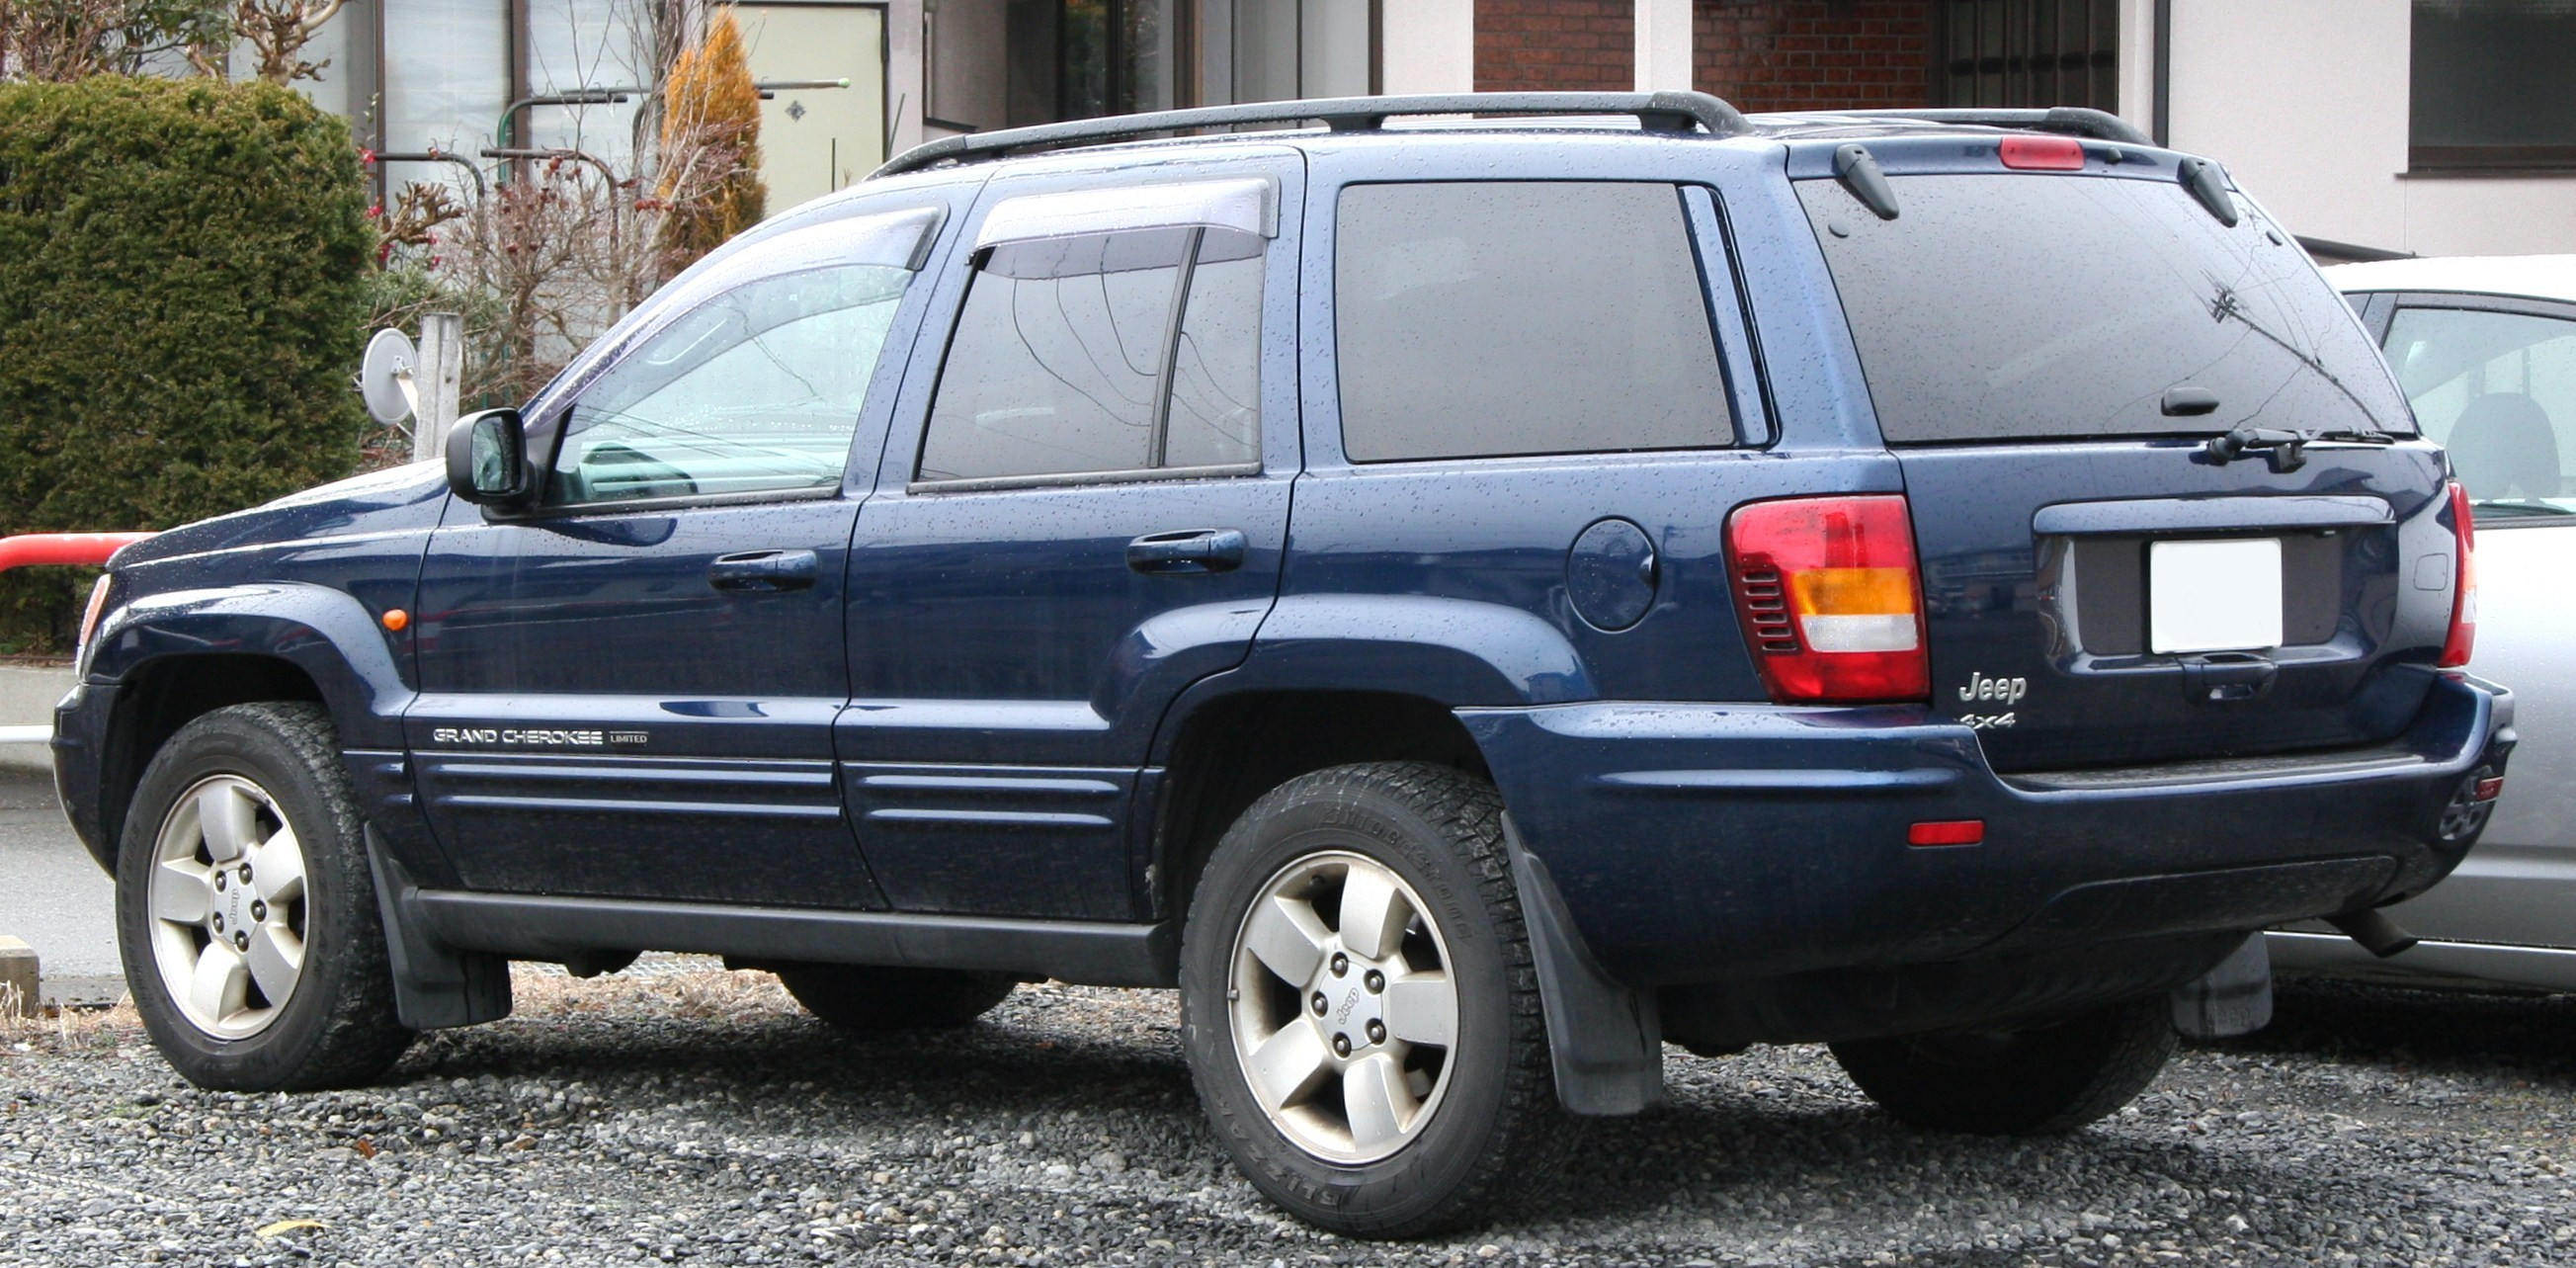 Jeep Cherokee 2005 photo - 2